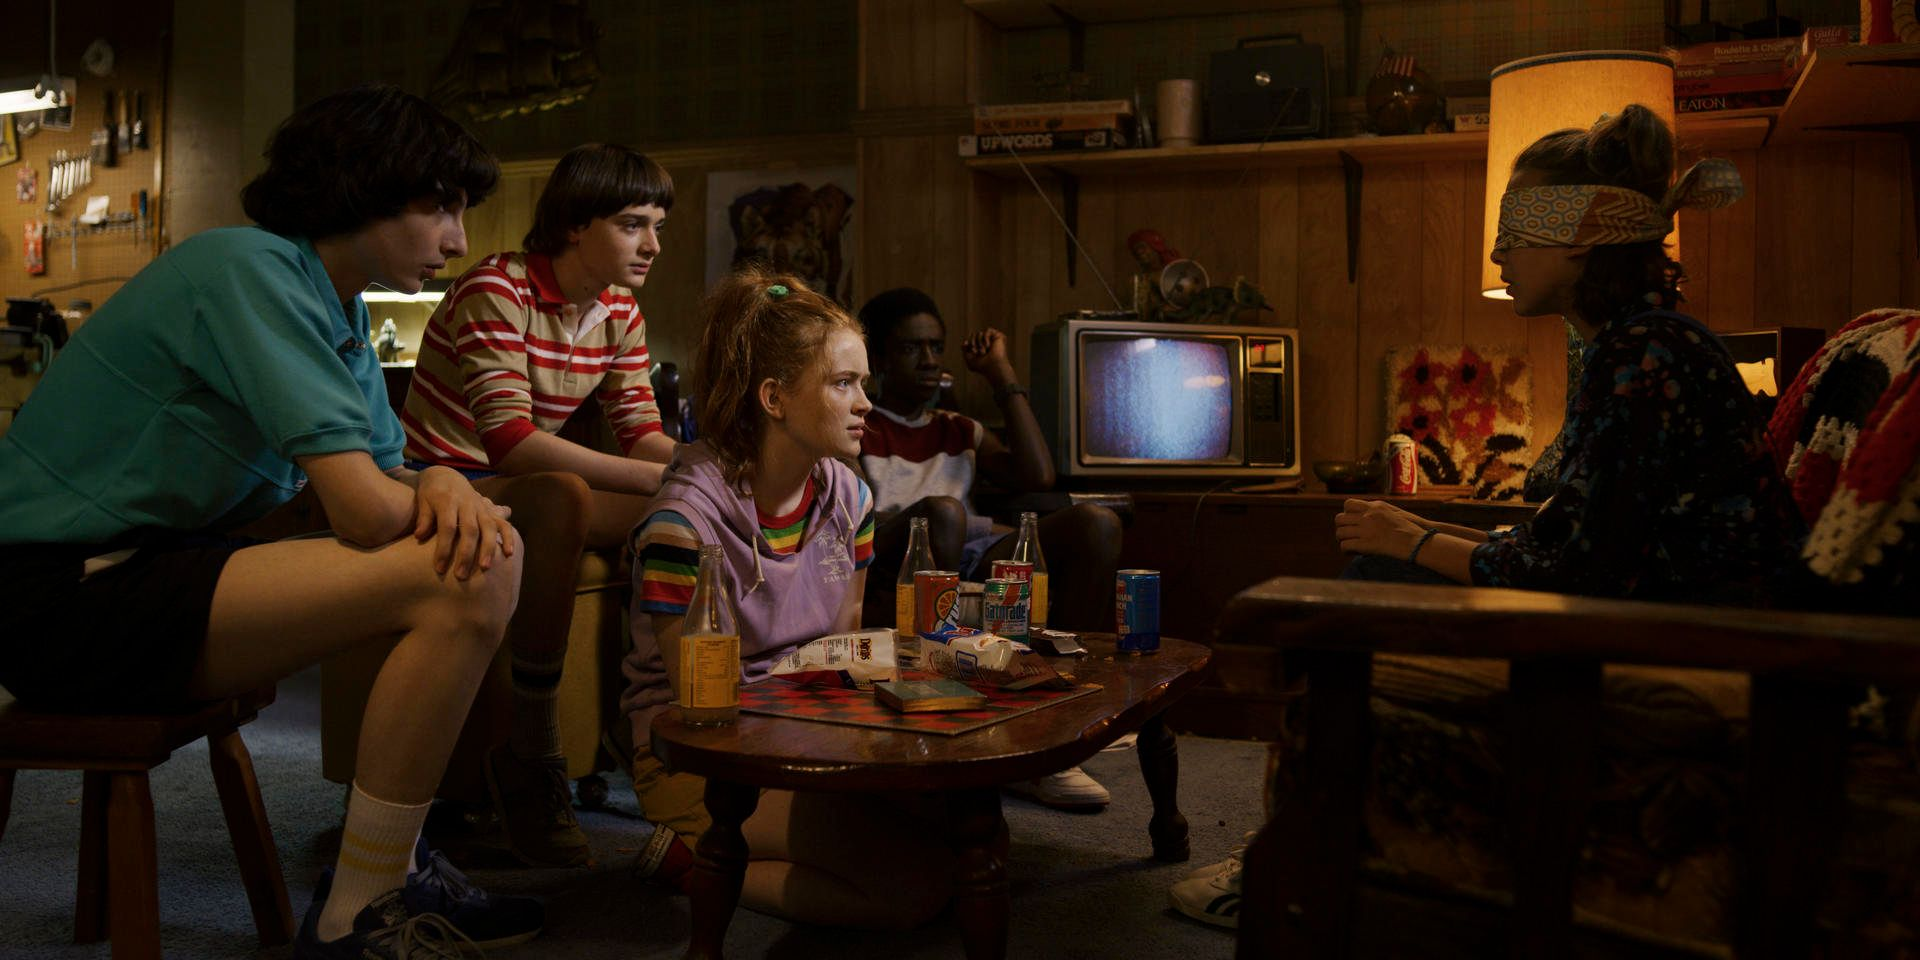 Netflix Drops Jam-Packed New Trailer For 'Stranger Things' Season 3